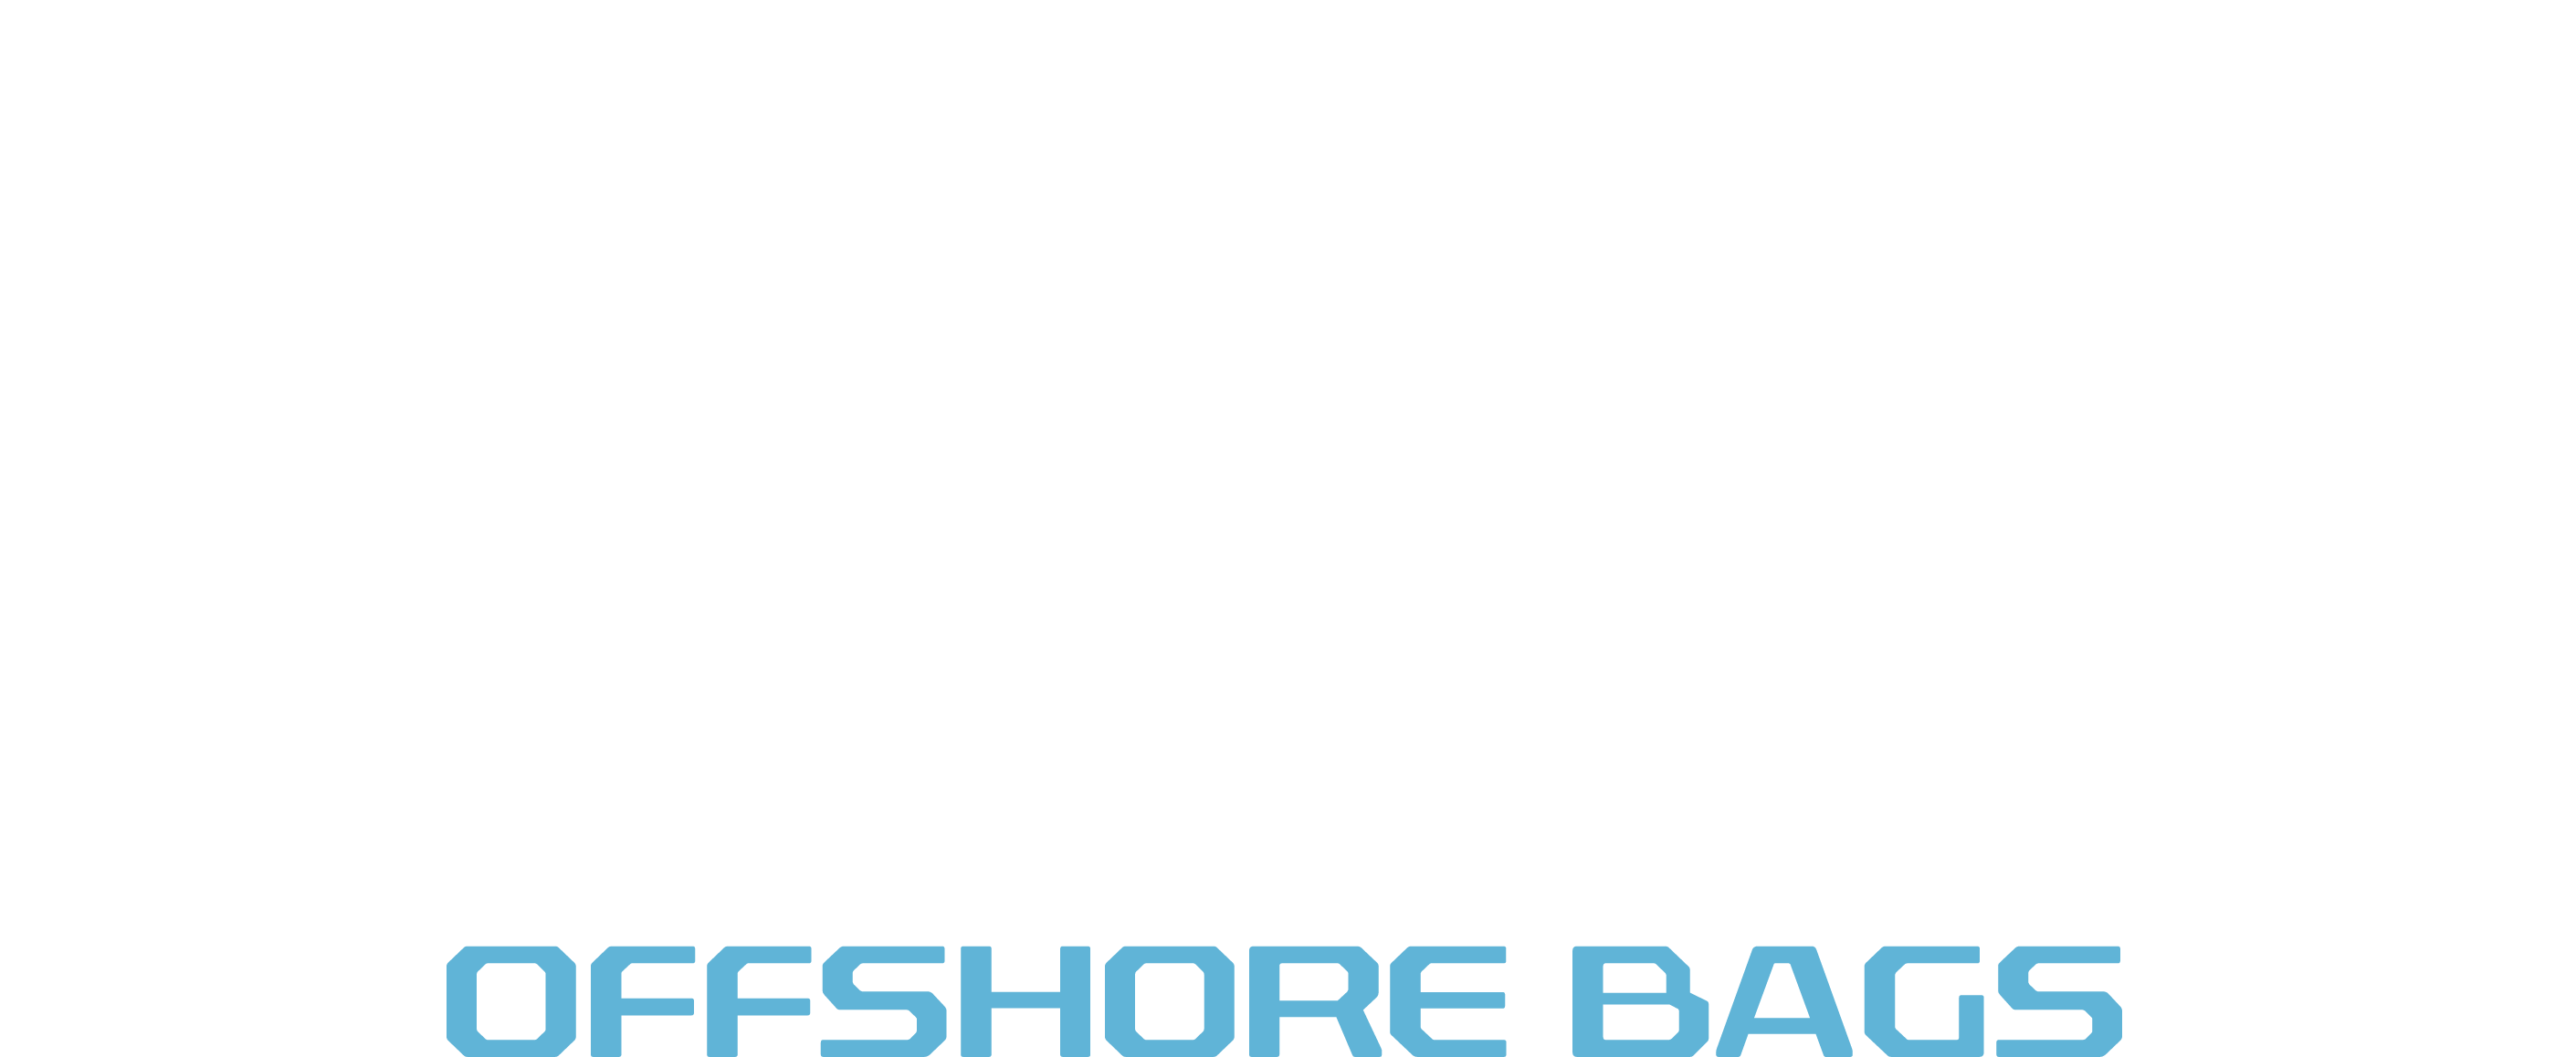 North Sea Offshore Bags transparrent banner logo